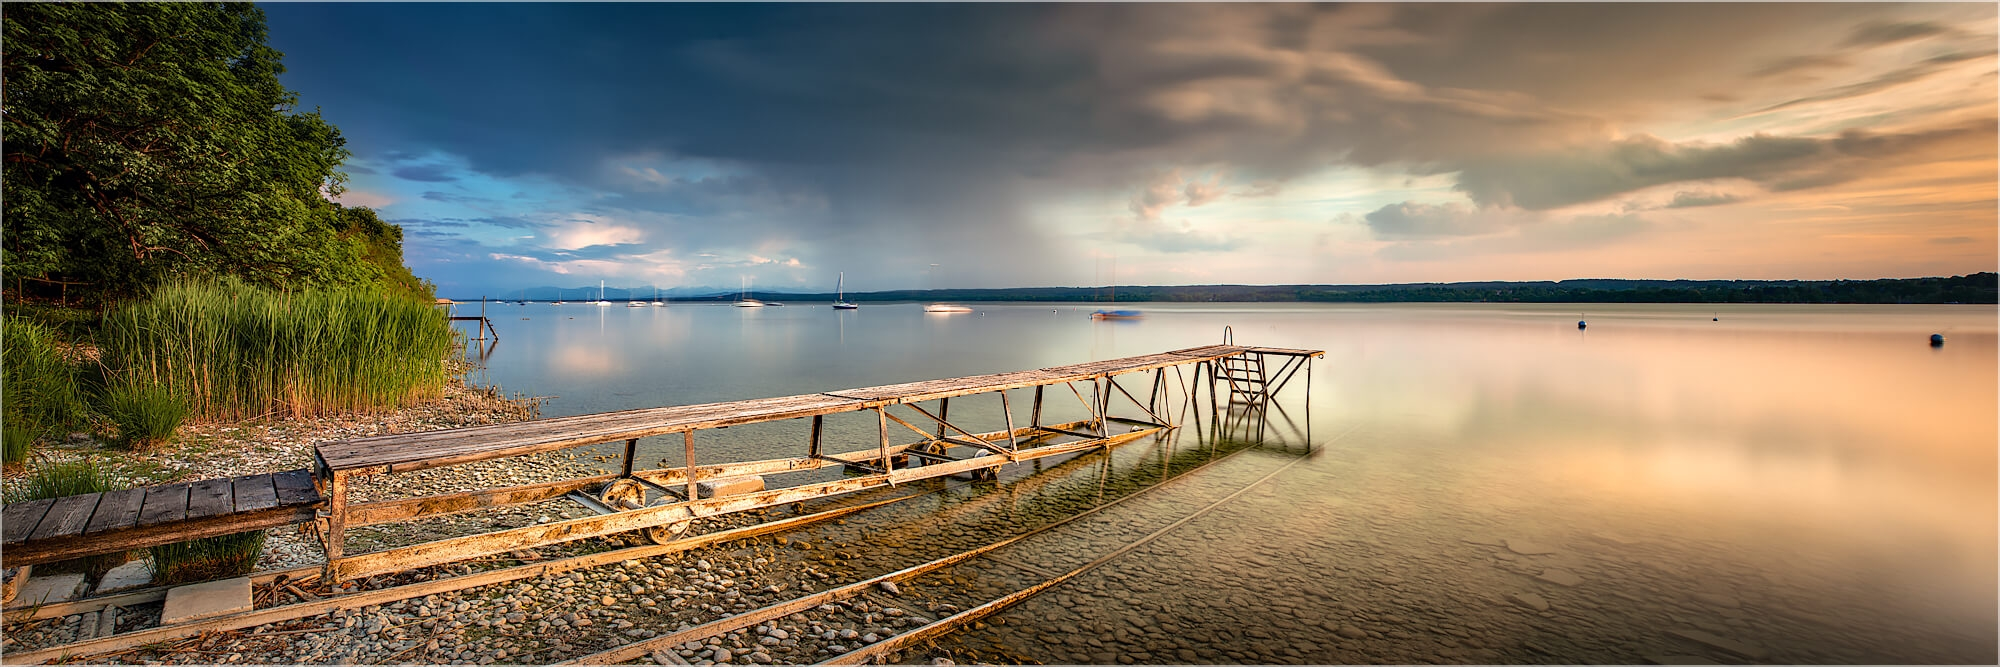 Panoramafoto nachmittags am Ammersee in Bayern